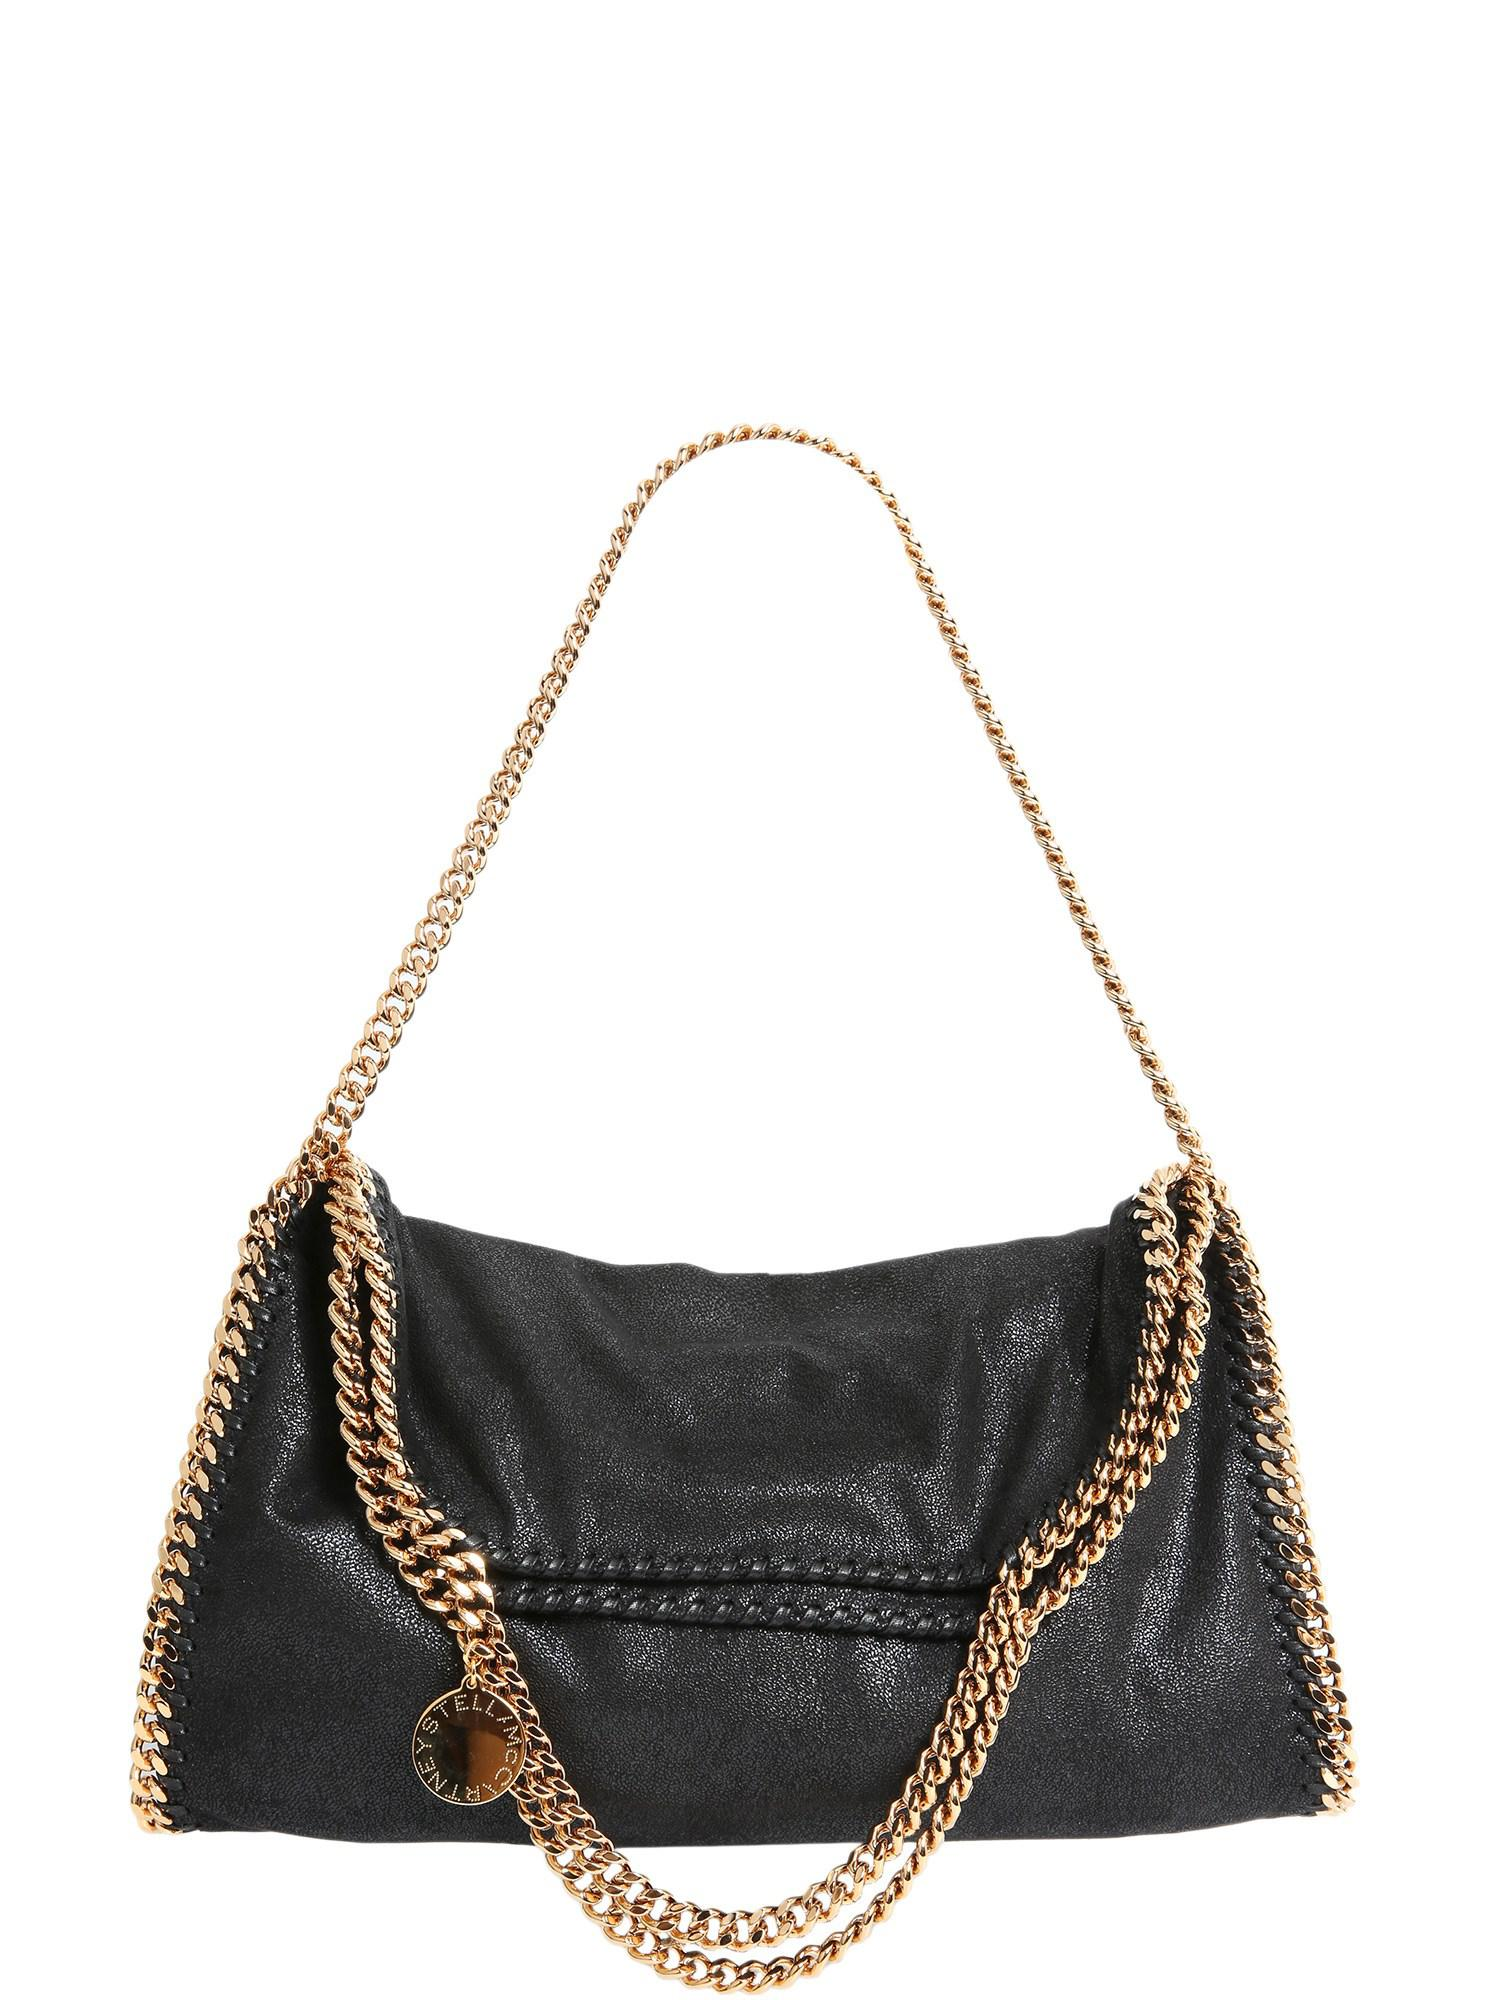 e52ac763968 Stella Mccartney Falabella SHAGGY Deer Fold Over Tote in Black - Lyst